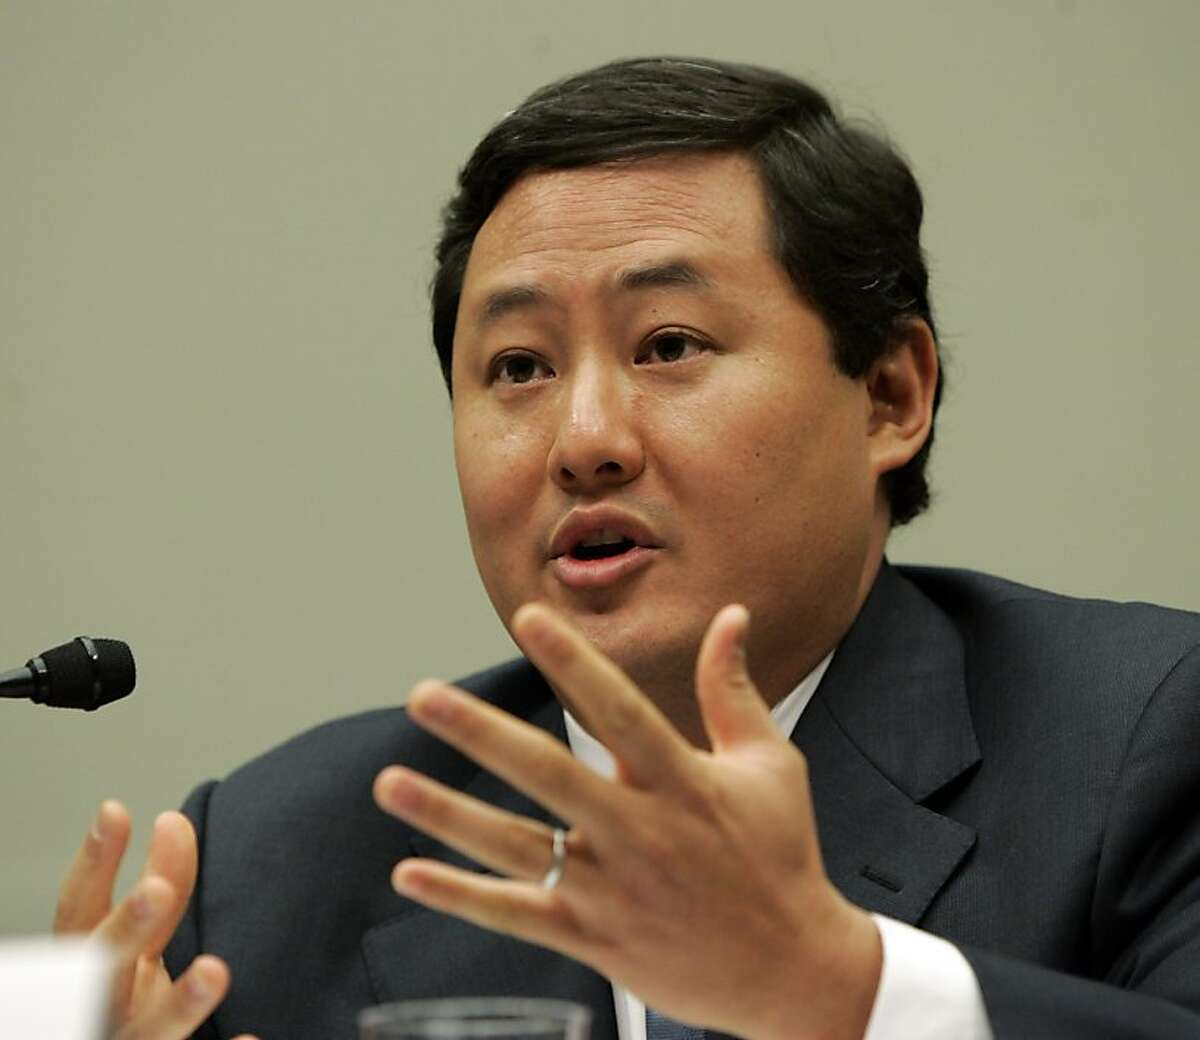 In this June 26, 2008 file photo John Yoo, a law professor at the University of California at Berkeley, testifies on Capitol Hill in Washington. Justice Department officials have stopped short of recommending criminal charges against Bush administration lawyers who wrote secret memos approving harsh interrogation techniques of terror suspects. (AP Photo/Susan Walsh, File)